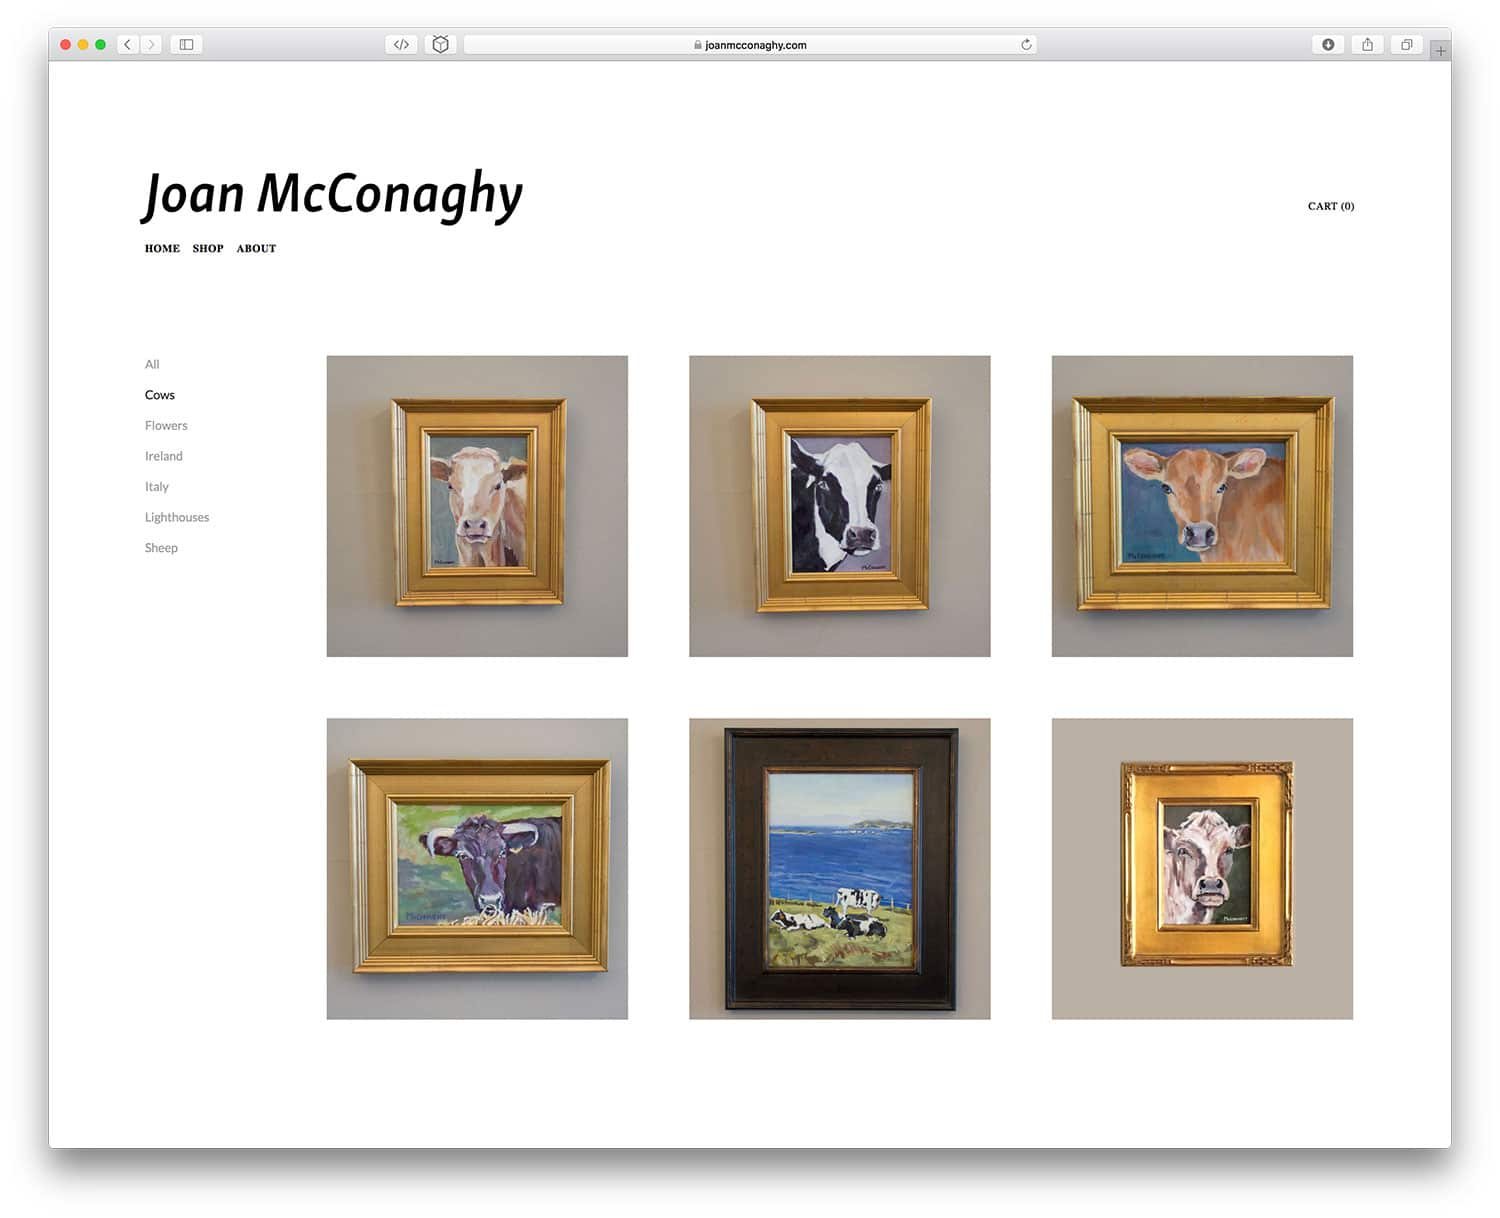 Joan McConaghy Store